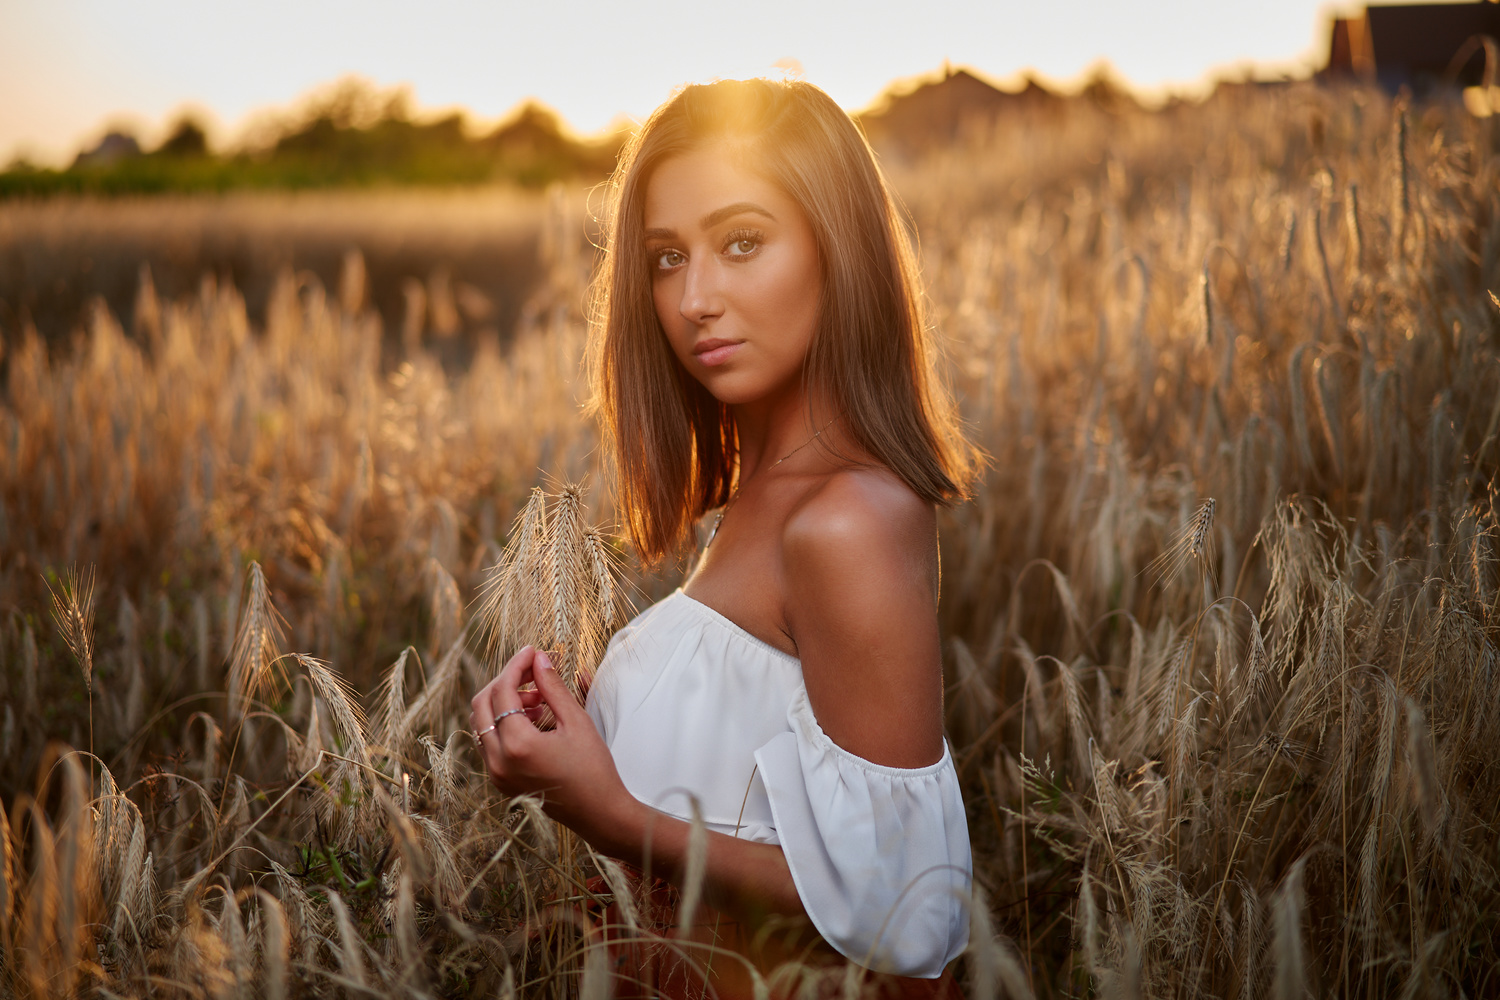 In the fields of gold by Damian Bereza